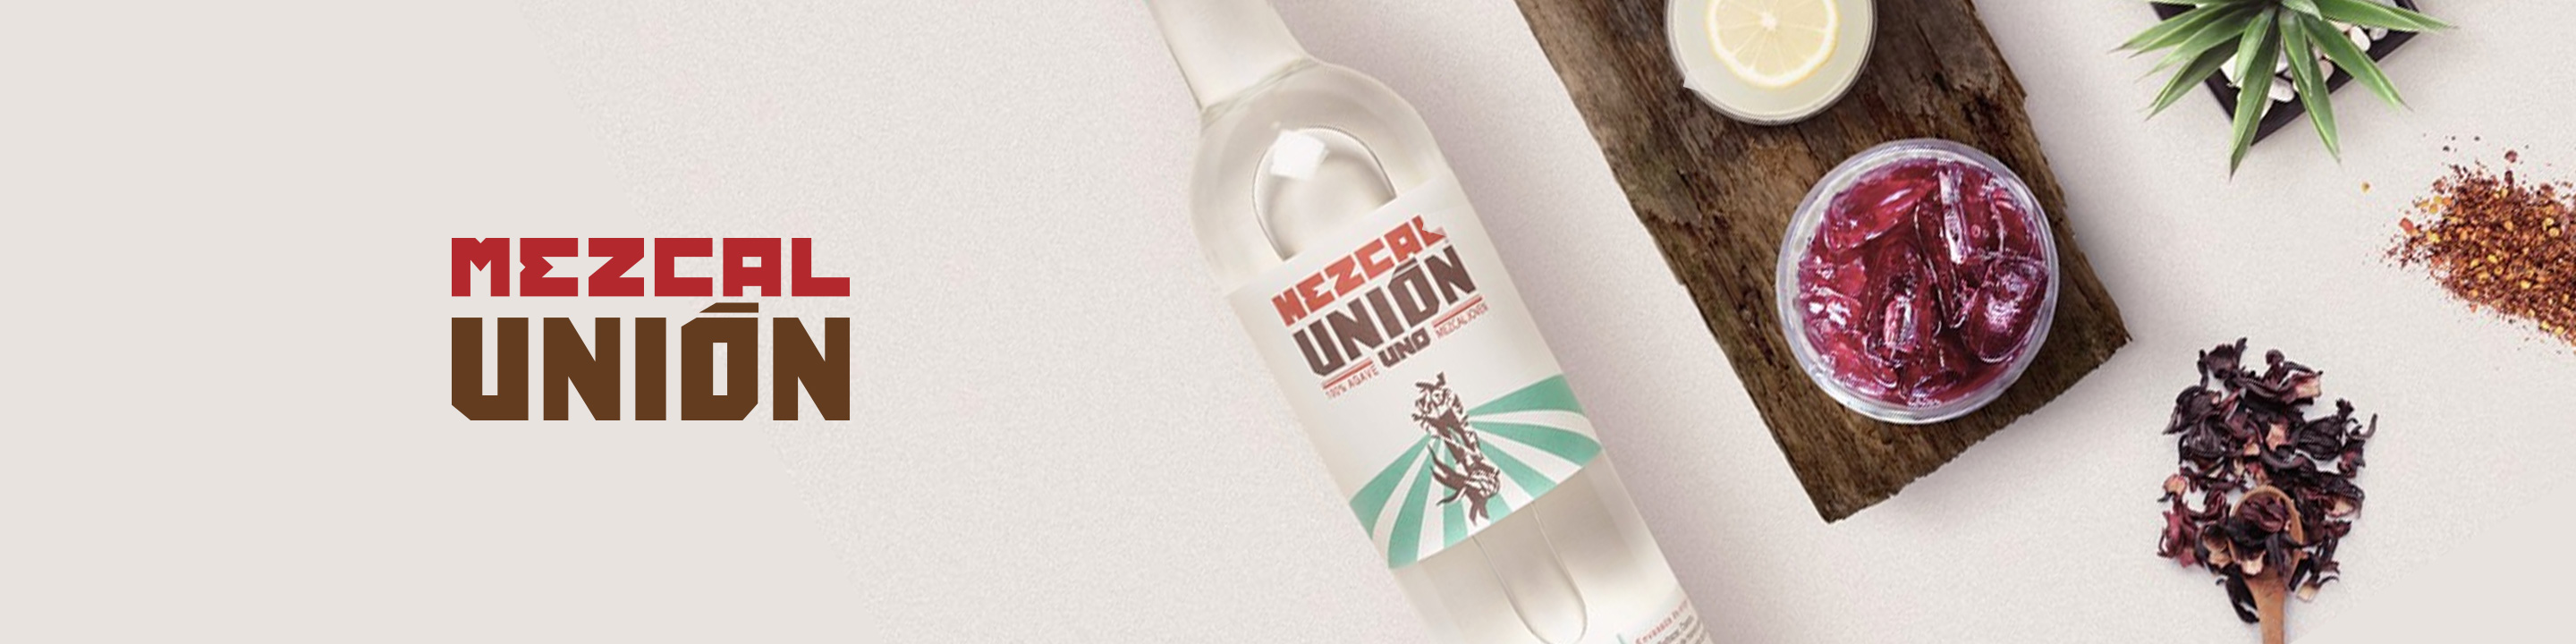 A philosophy, a movement to catalyze collaboration in agave farming and Mezcal production while generating socioeconomic prosperity. We focus on tradition, quality, sustainability and take our social responsibility seriously.  Buy Mezcal Union online now from your nearby liquor store via Minibar Delivery.